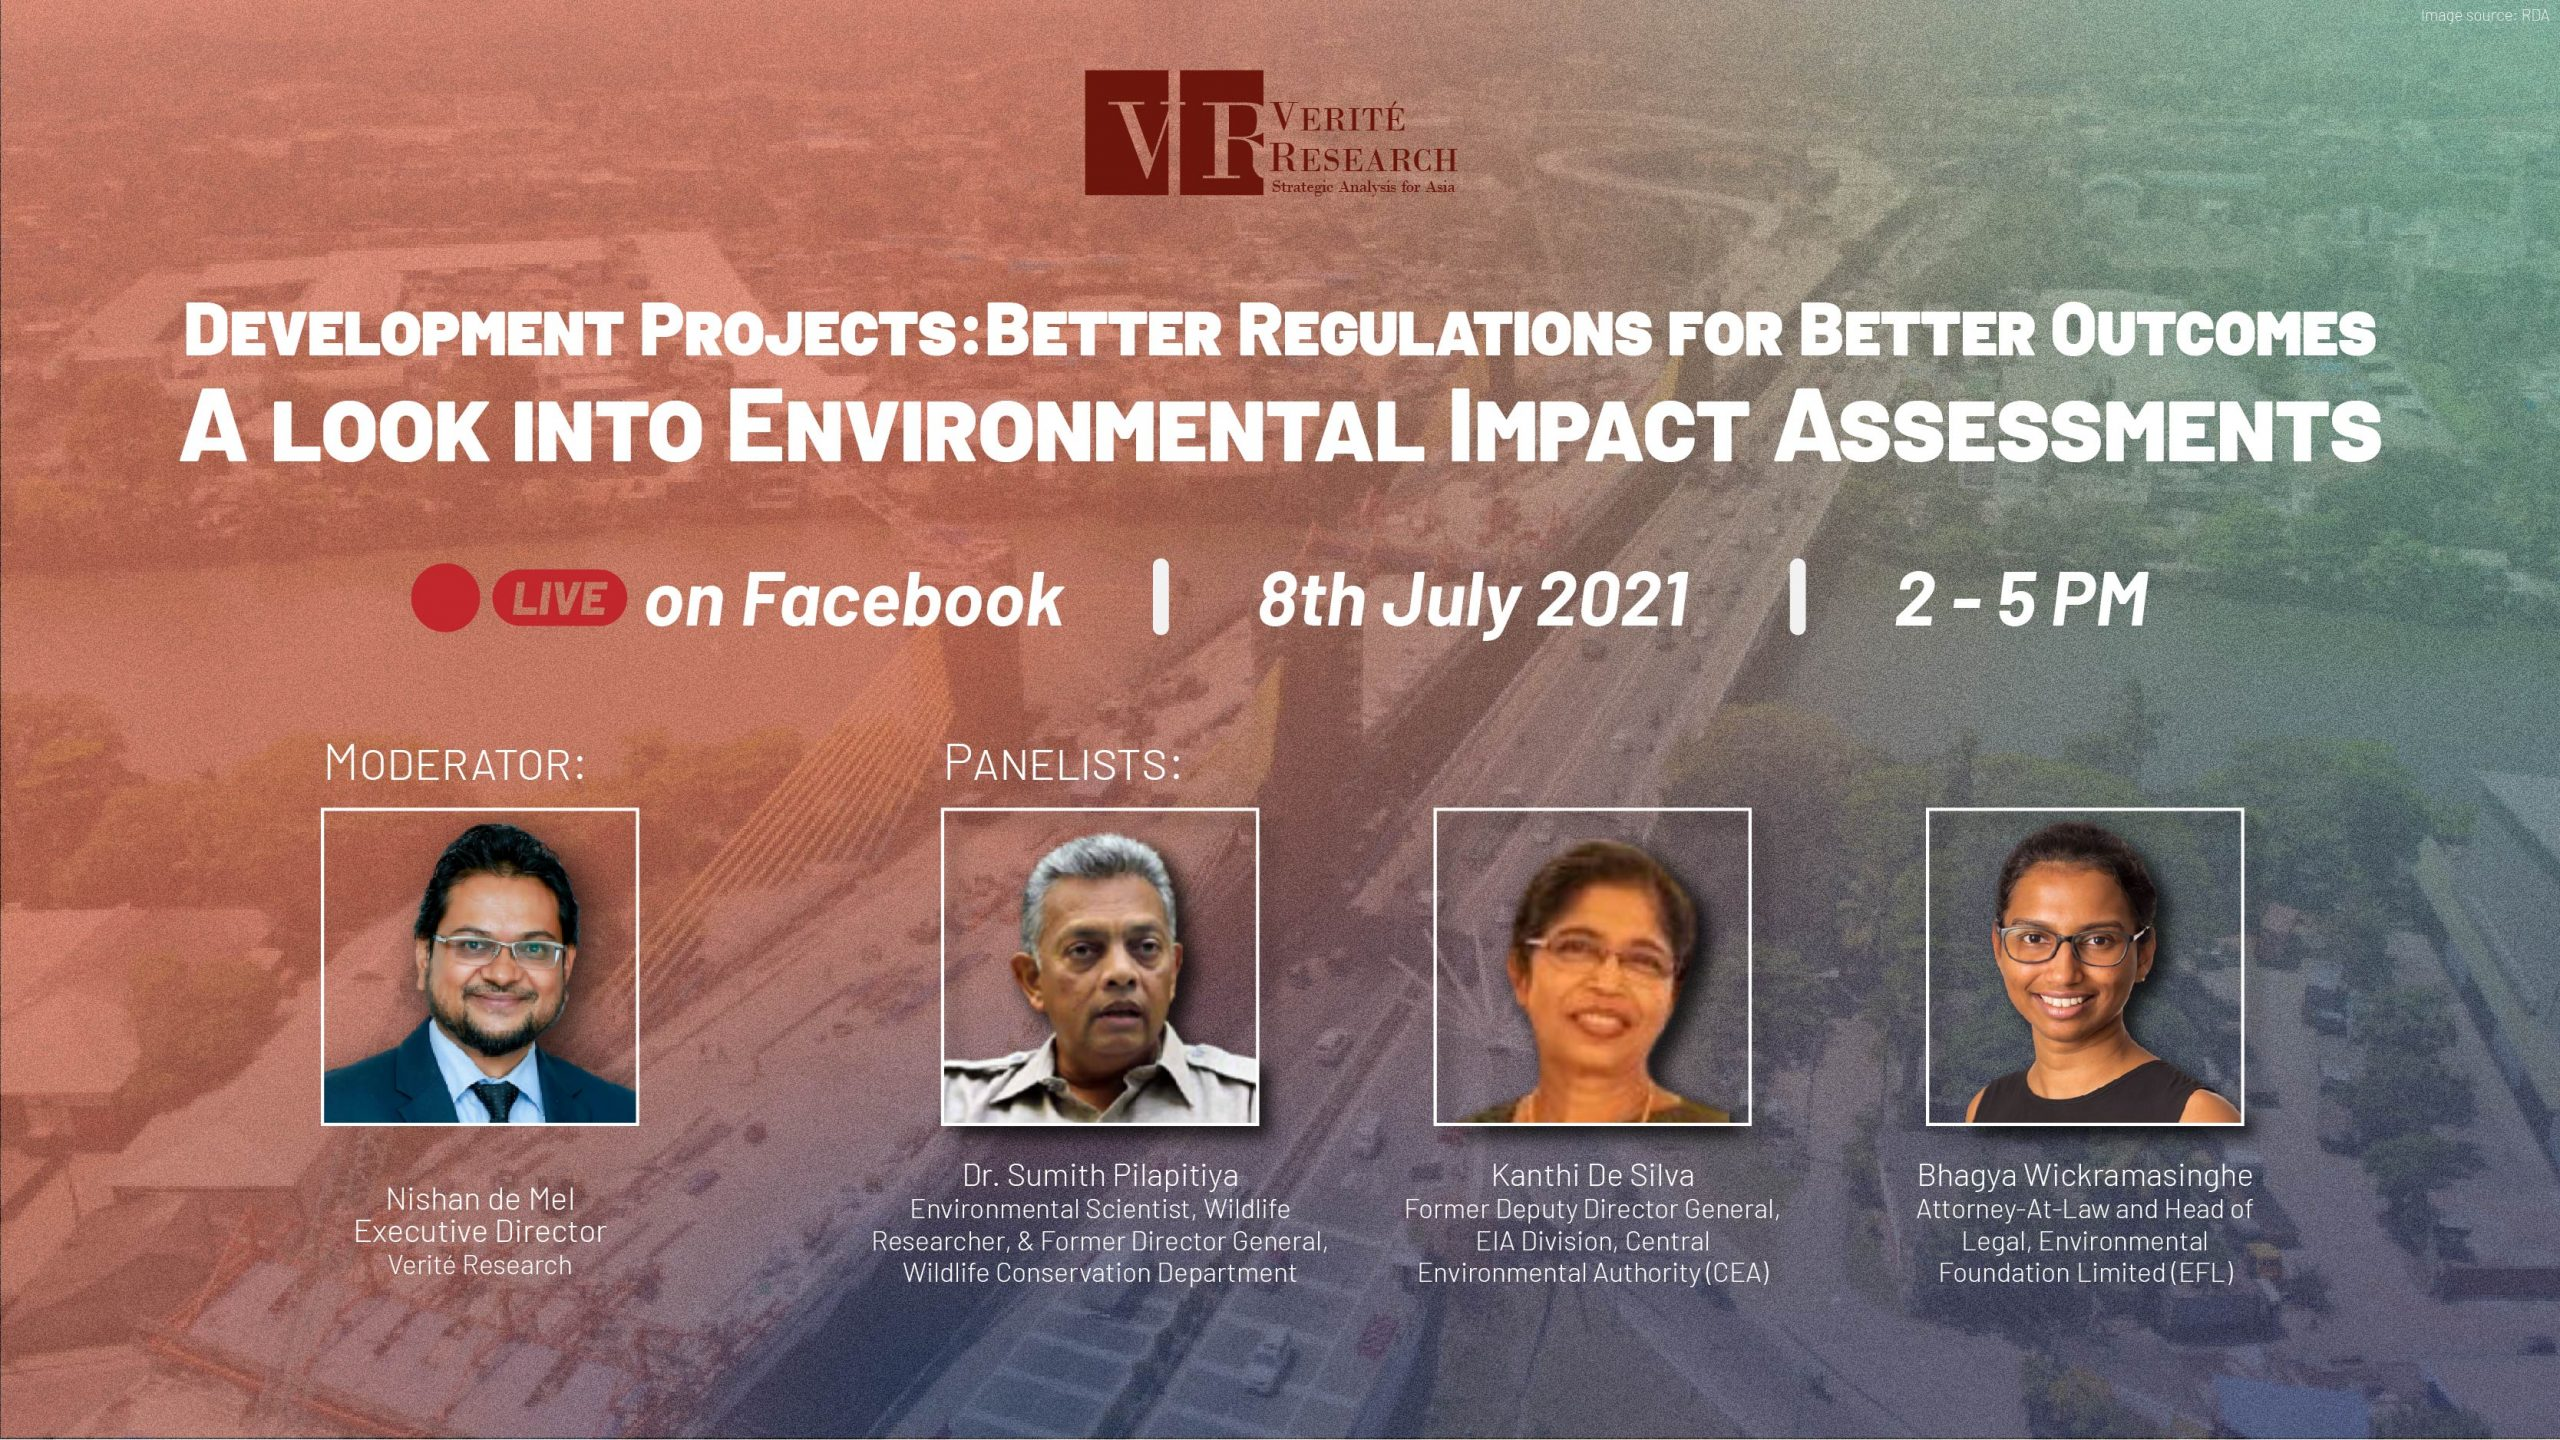 development projects: better regulations for better outcomes